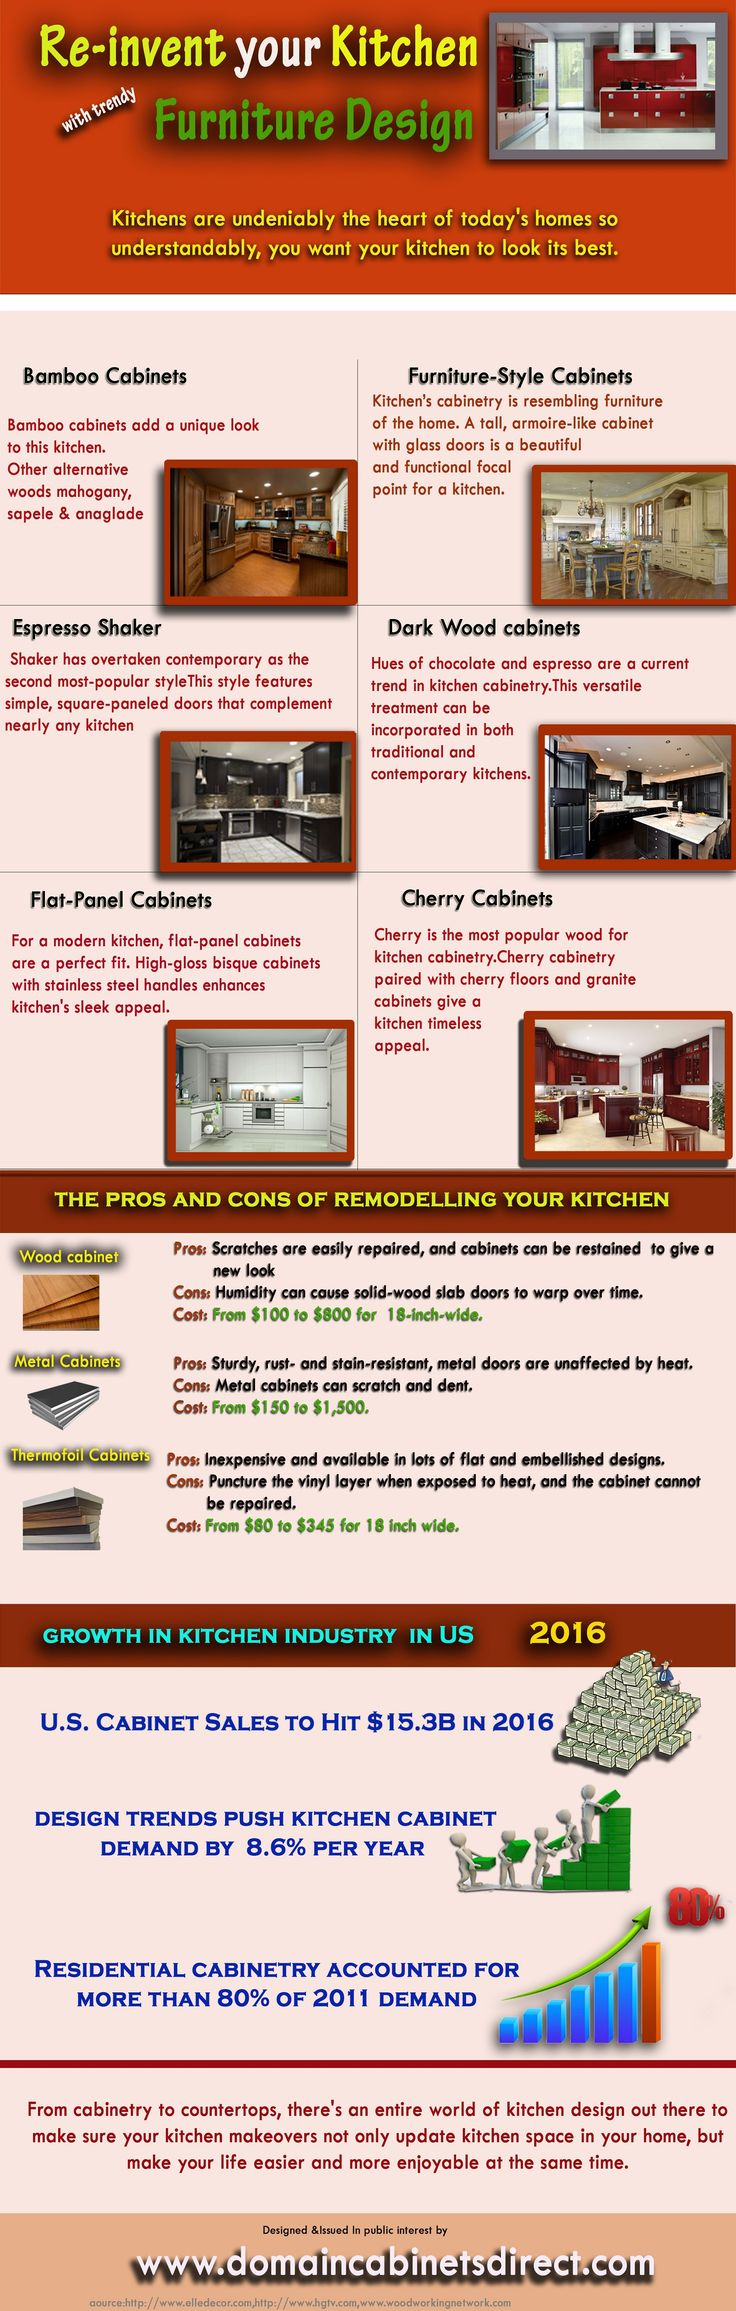 8 kitchen trends to avoid - This Infographic Provide Information On Re Invent Your Kitchen Ith Trendy Furniture Designa For